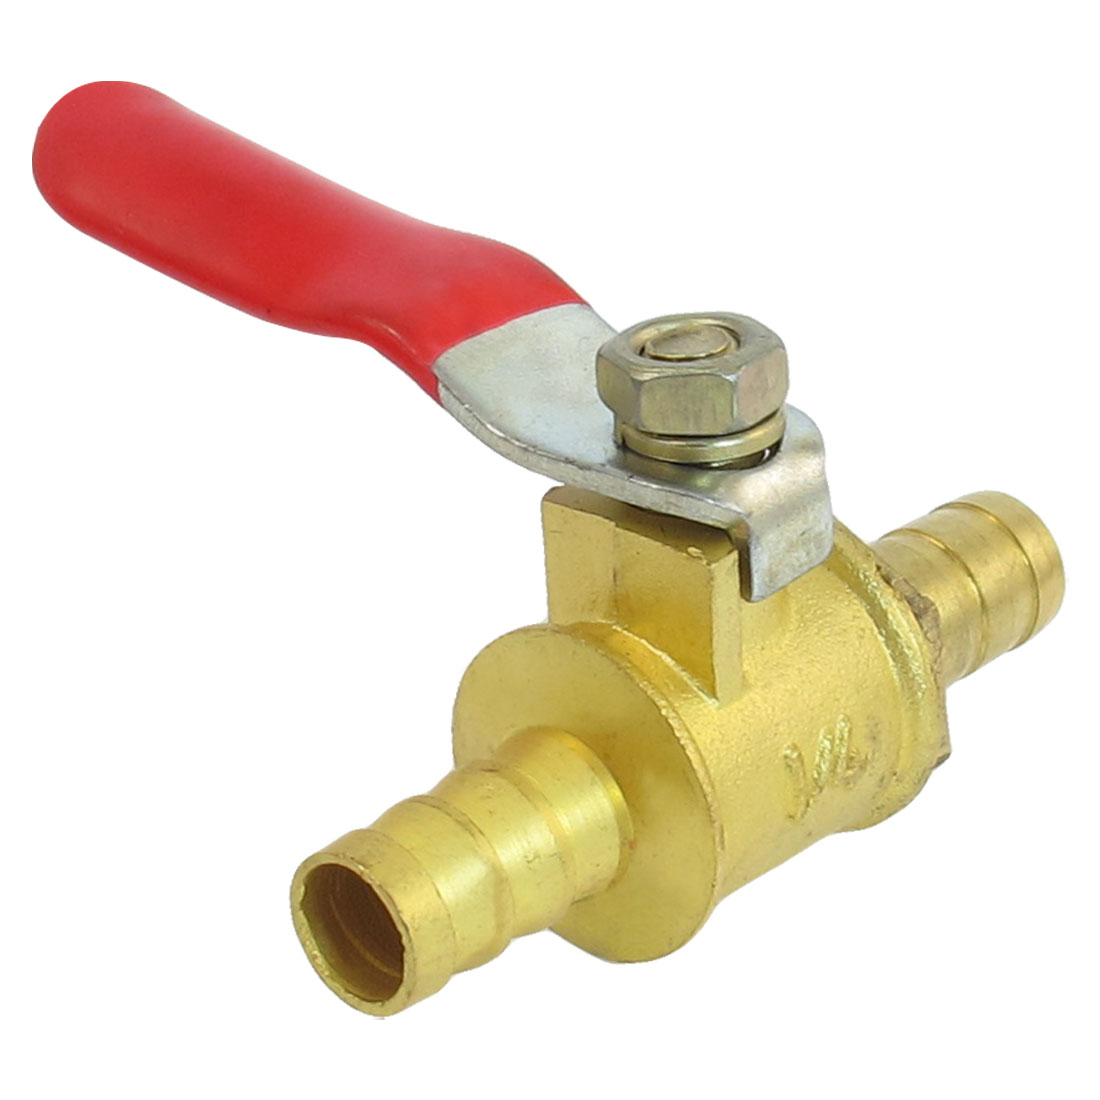 Pipe Fitting Connector 8mm Barb Hose Lever Handle Ball Valve